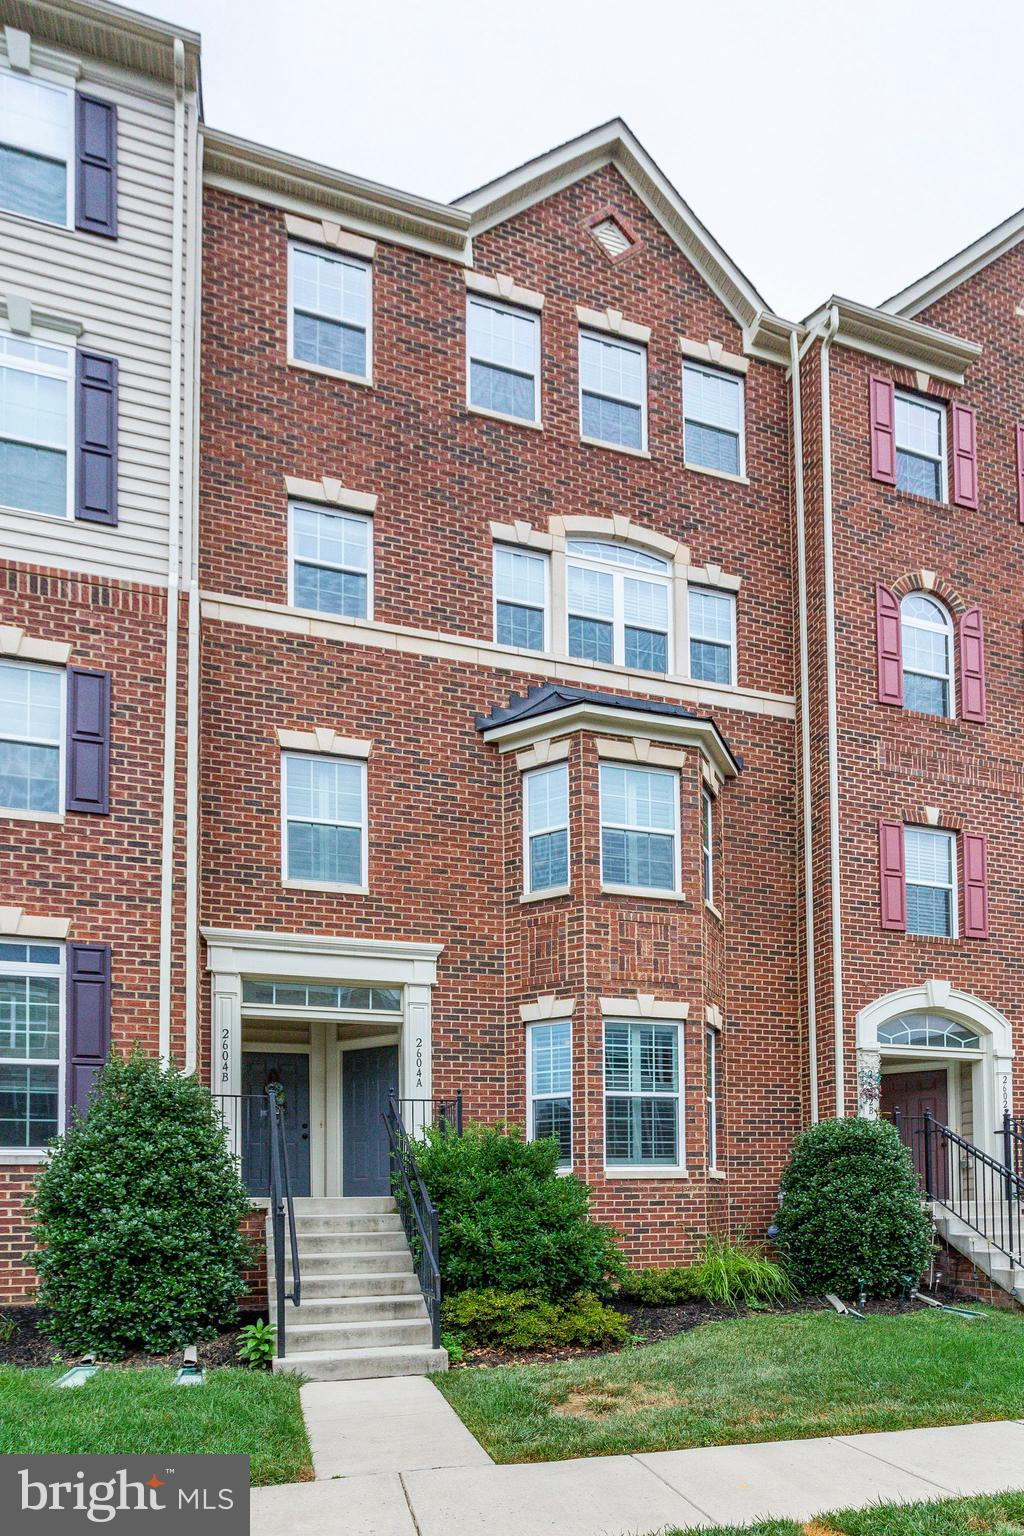 This gorgeous brick front condo is not only located in a prime location, it is move in ready with ab